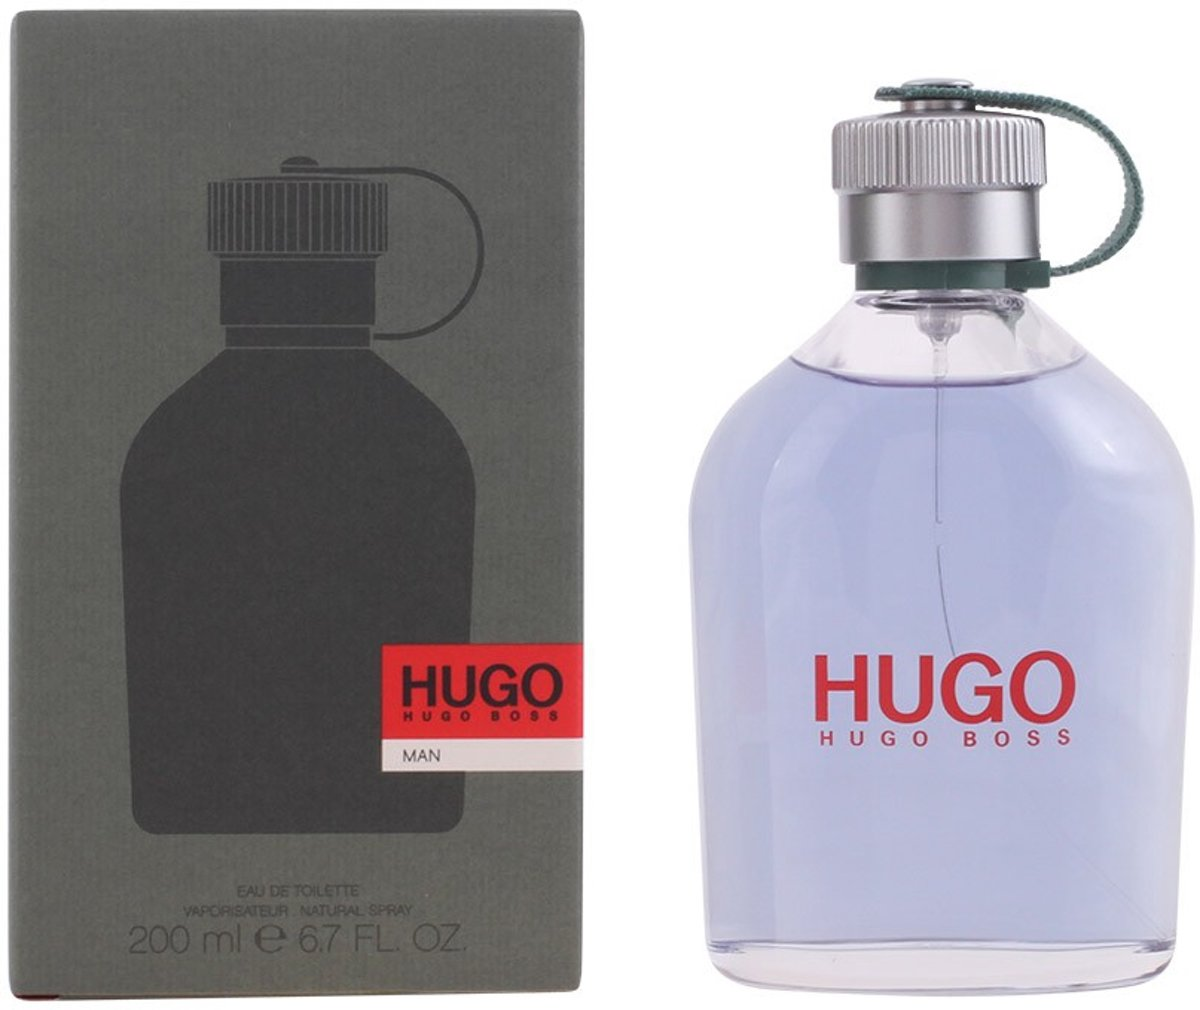 MULTI BUNDEL 2 stuks HUGO eau de toilette spray 200 ml